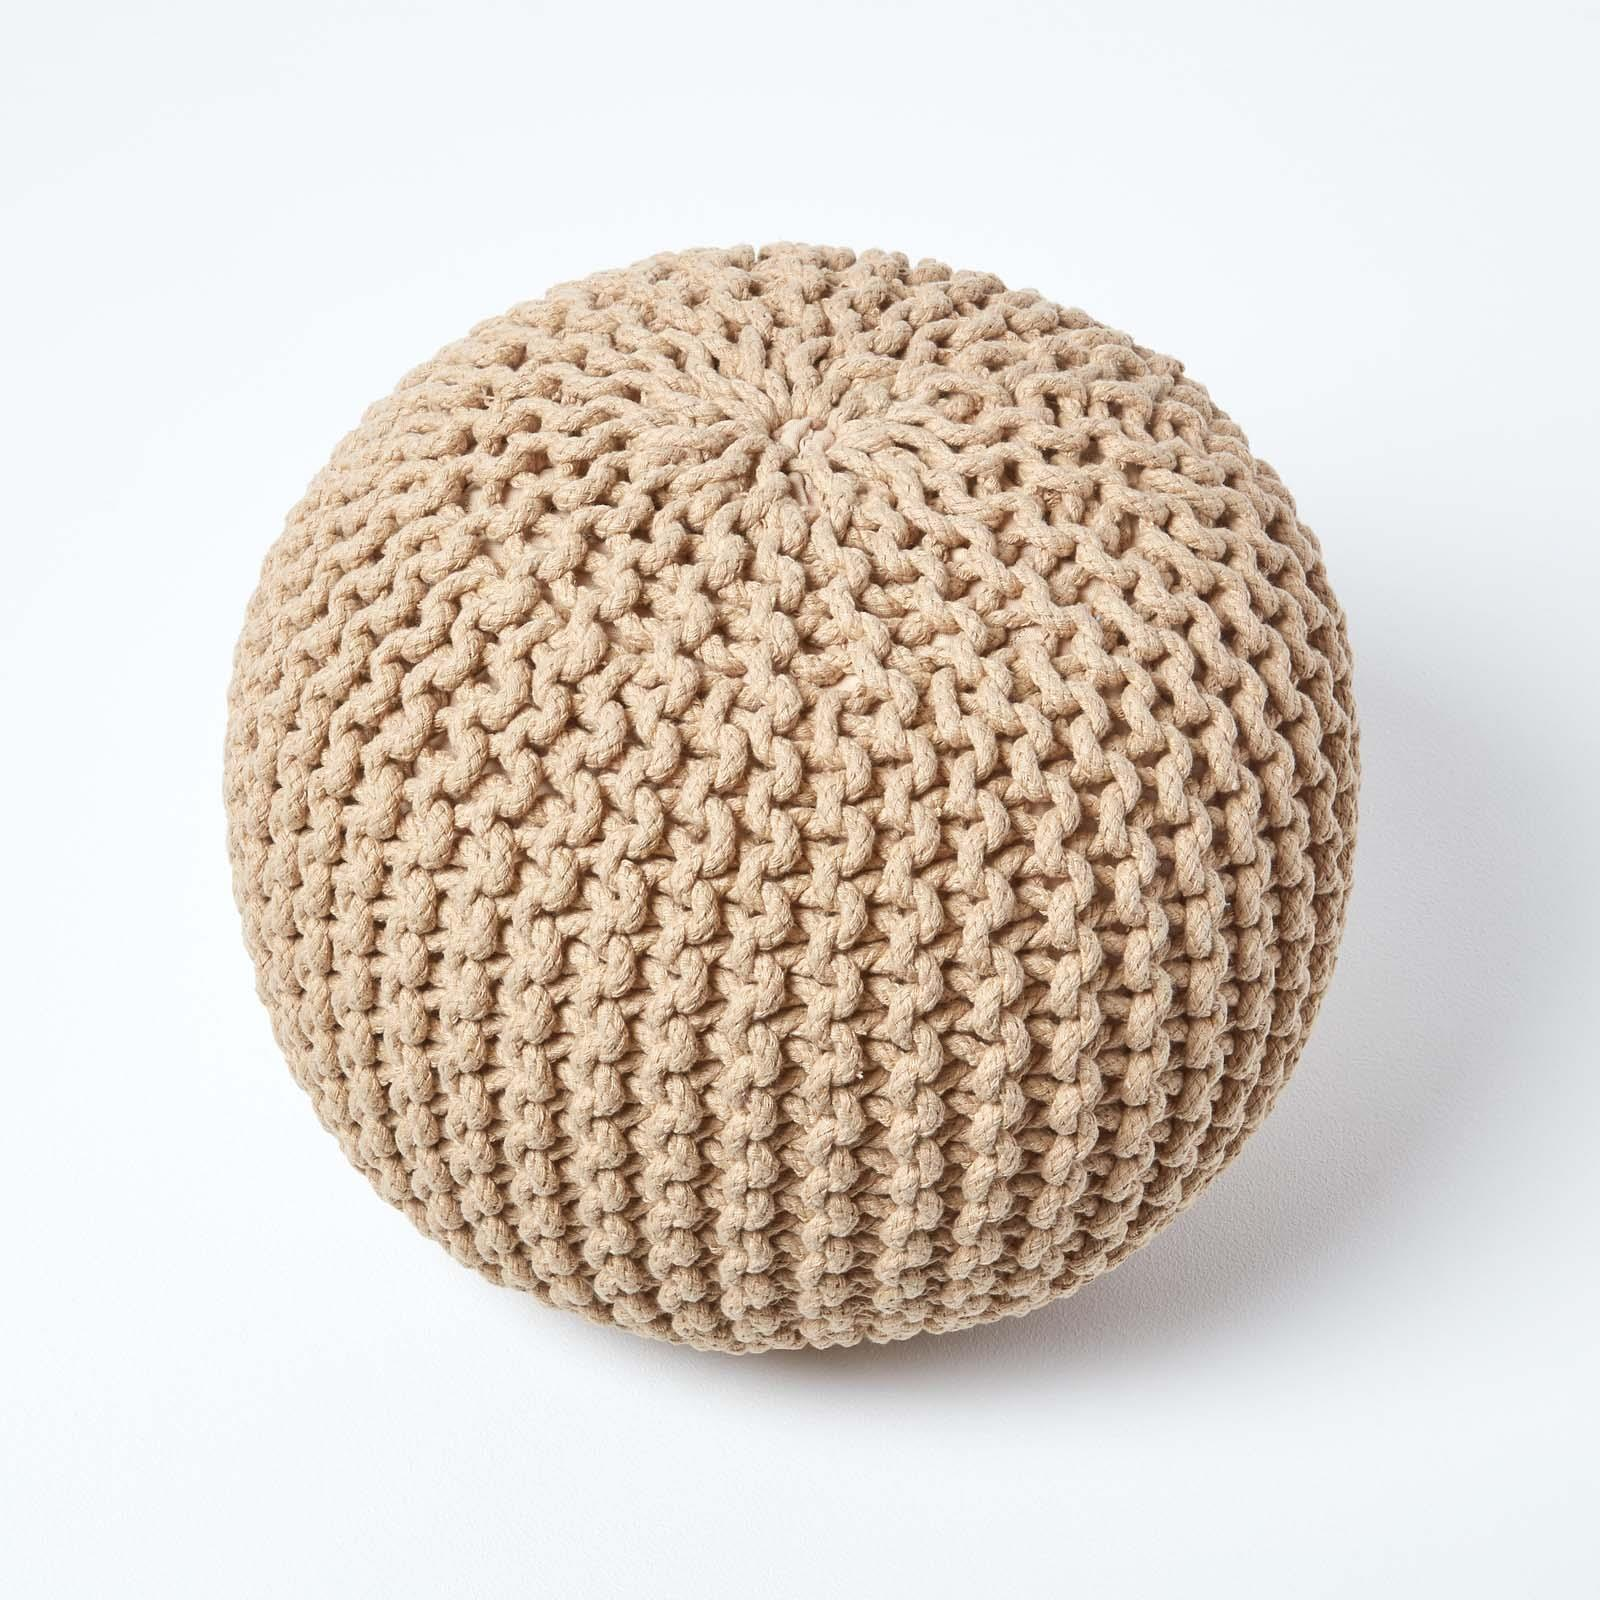 Hand-Knitted-100-Cotton-Pouffes-Round-Sphere-Or-Cube-Square-Chunky-Footstools thumbnail 81